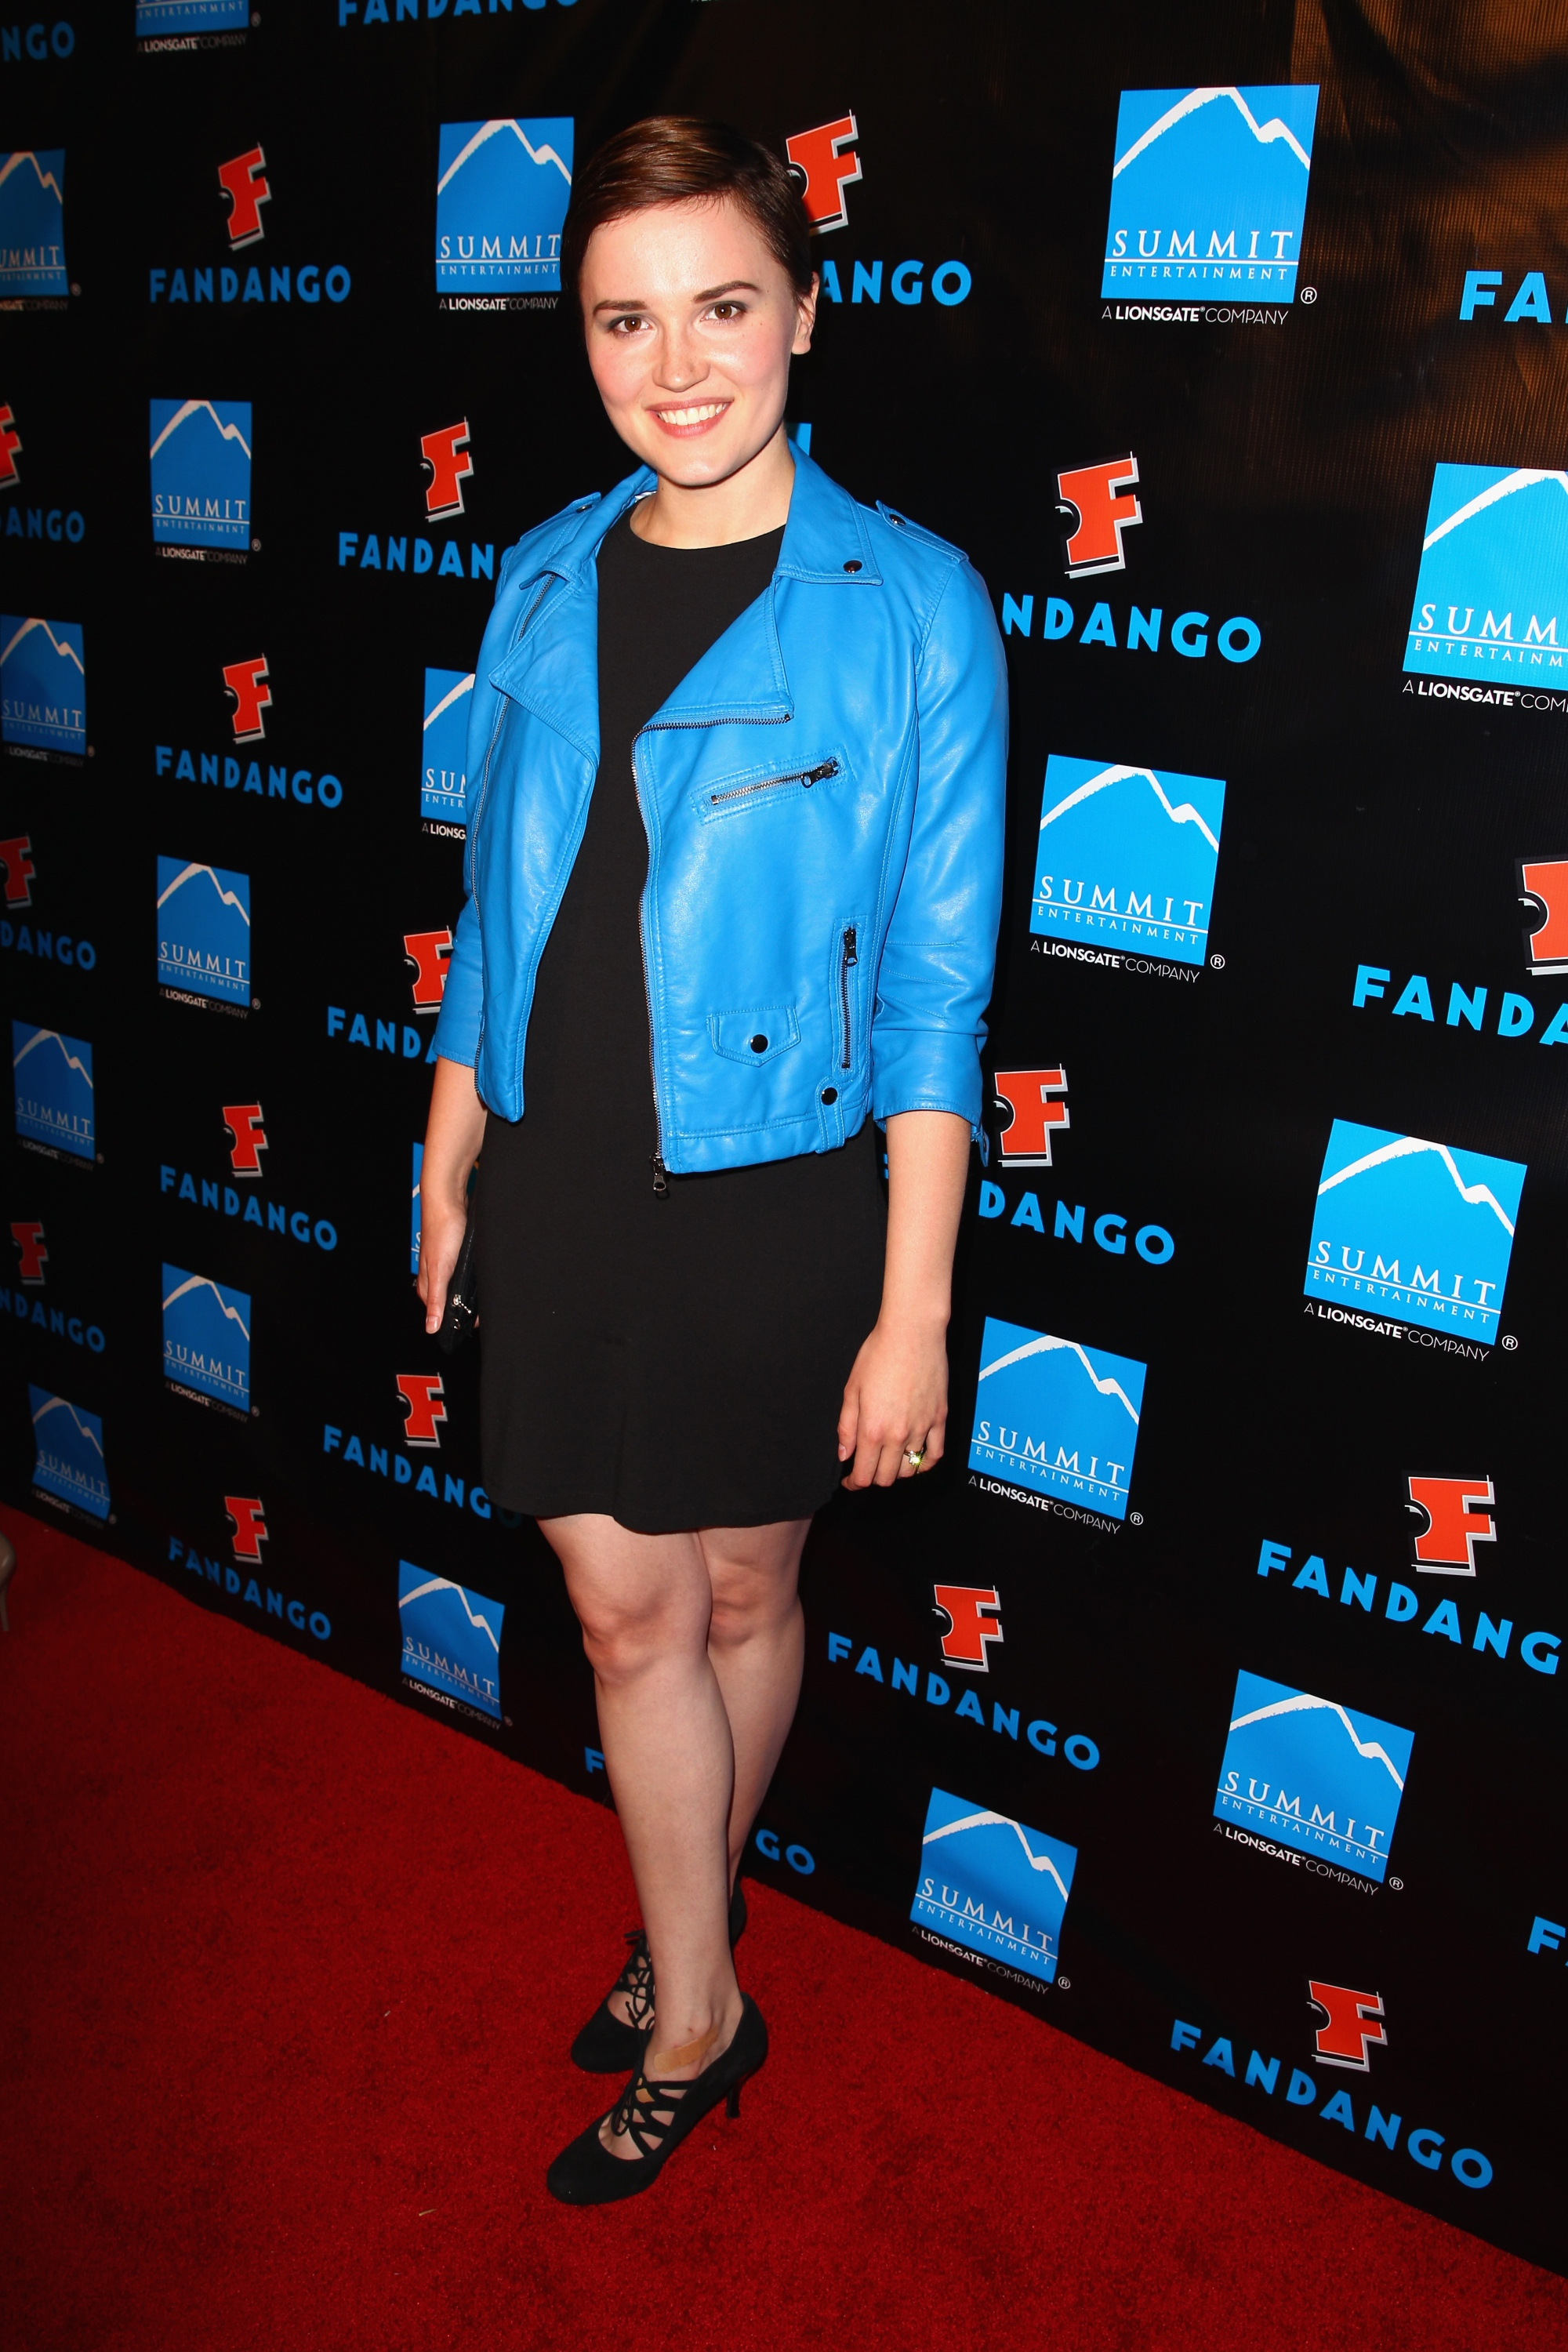 SAN DIEGO, CA - JULY 18:  Author Veronica Roth attends Summit Entertainment Comic-Con VIP Celebration red carpet sponsored by Fandango at Hard Rock Hotel San Diego on July 18, 2013 in San Diego, California.  (Photo by Joe Scarnici/Getty Images for Summit Entertainment) ** TCN OUT **